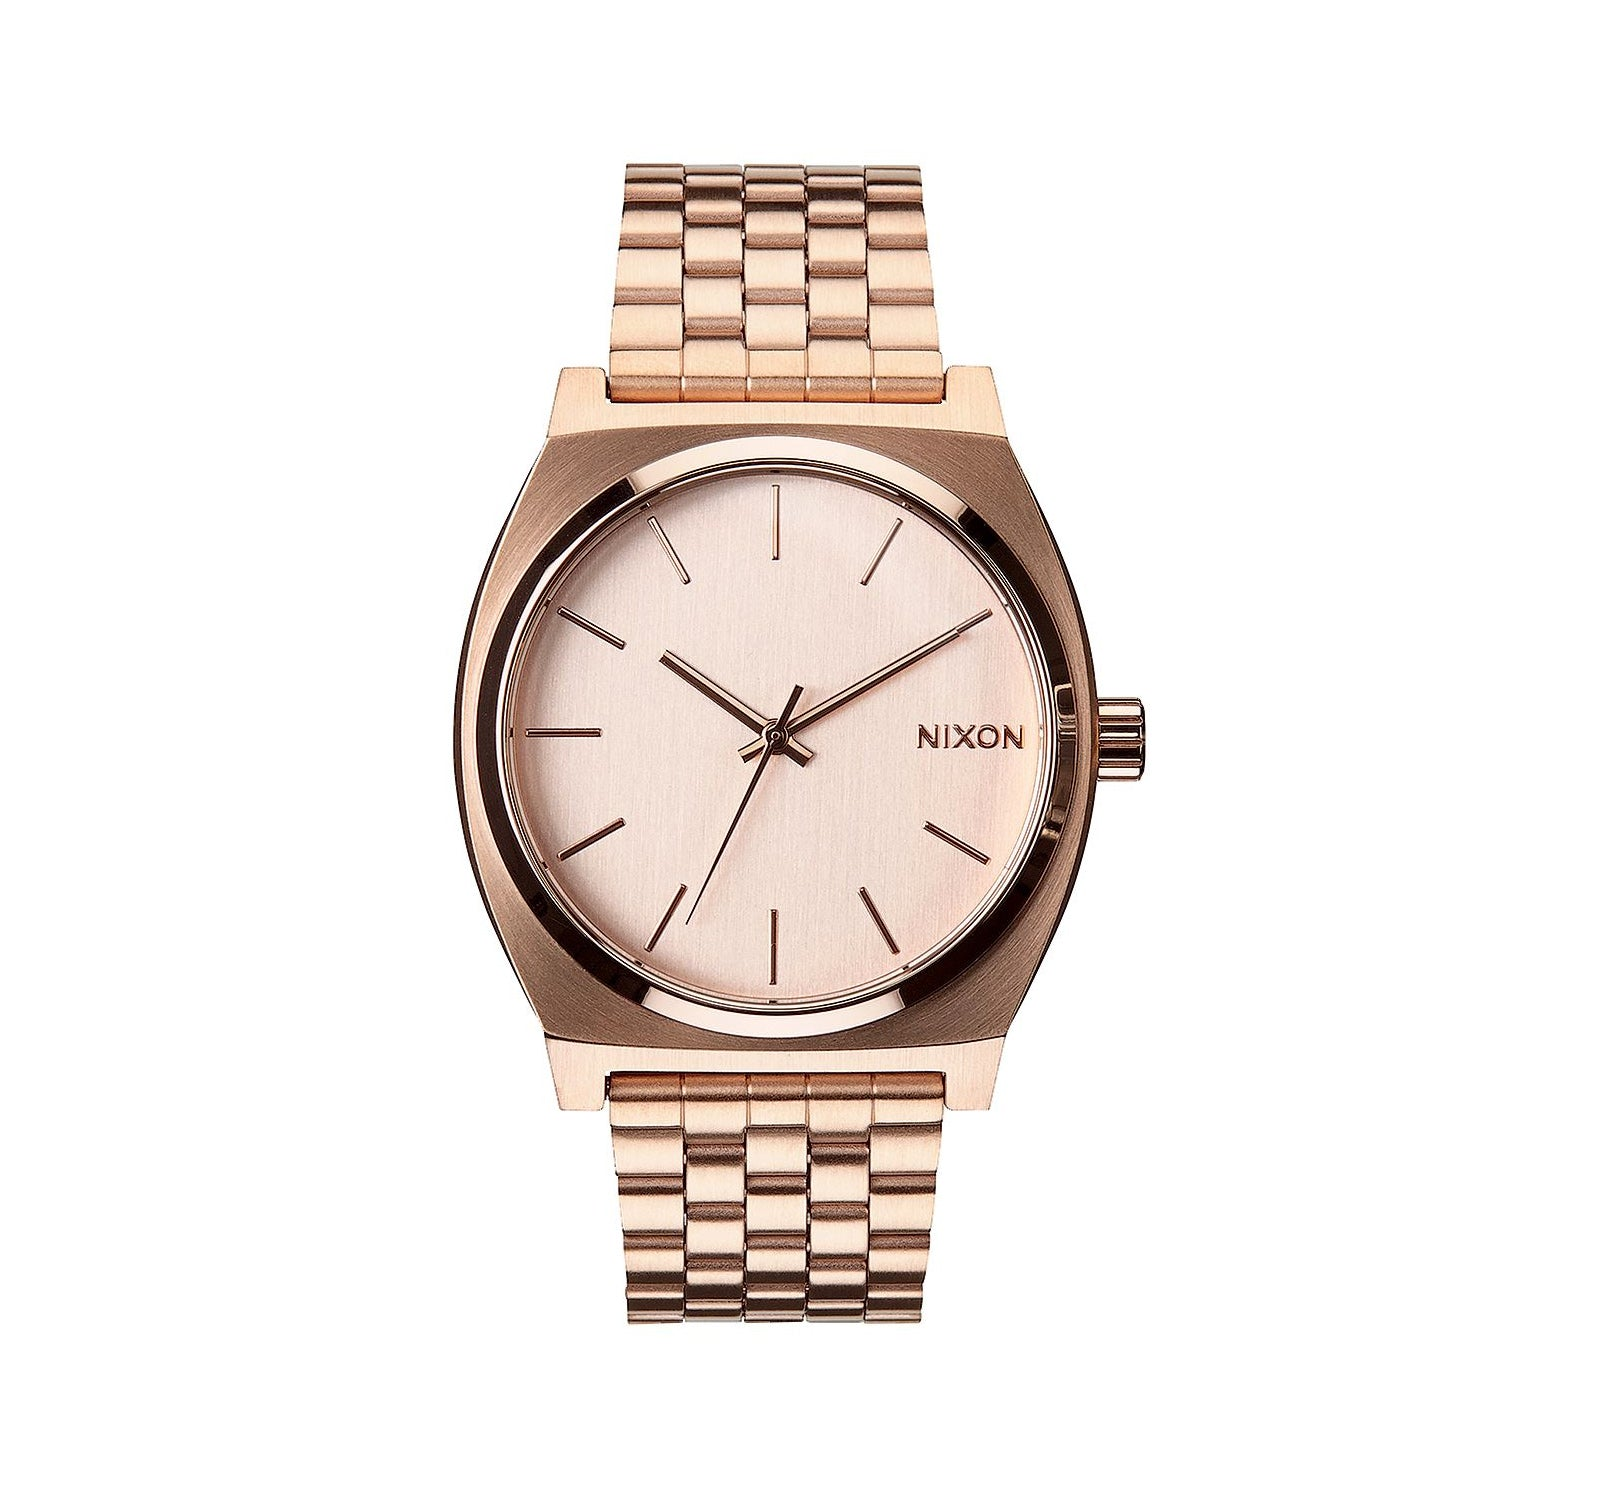 Nixon Time Teller Women's Watch - All Rose Gold